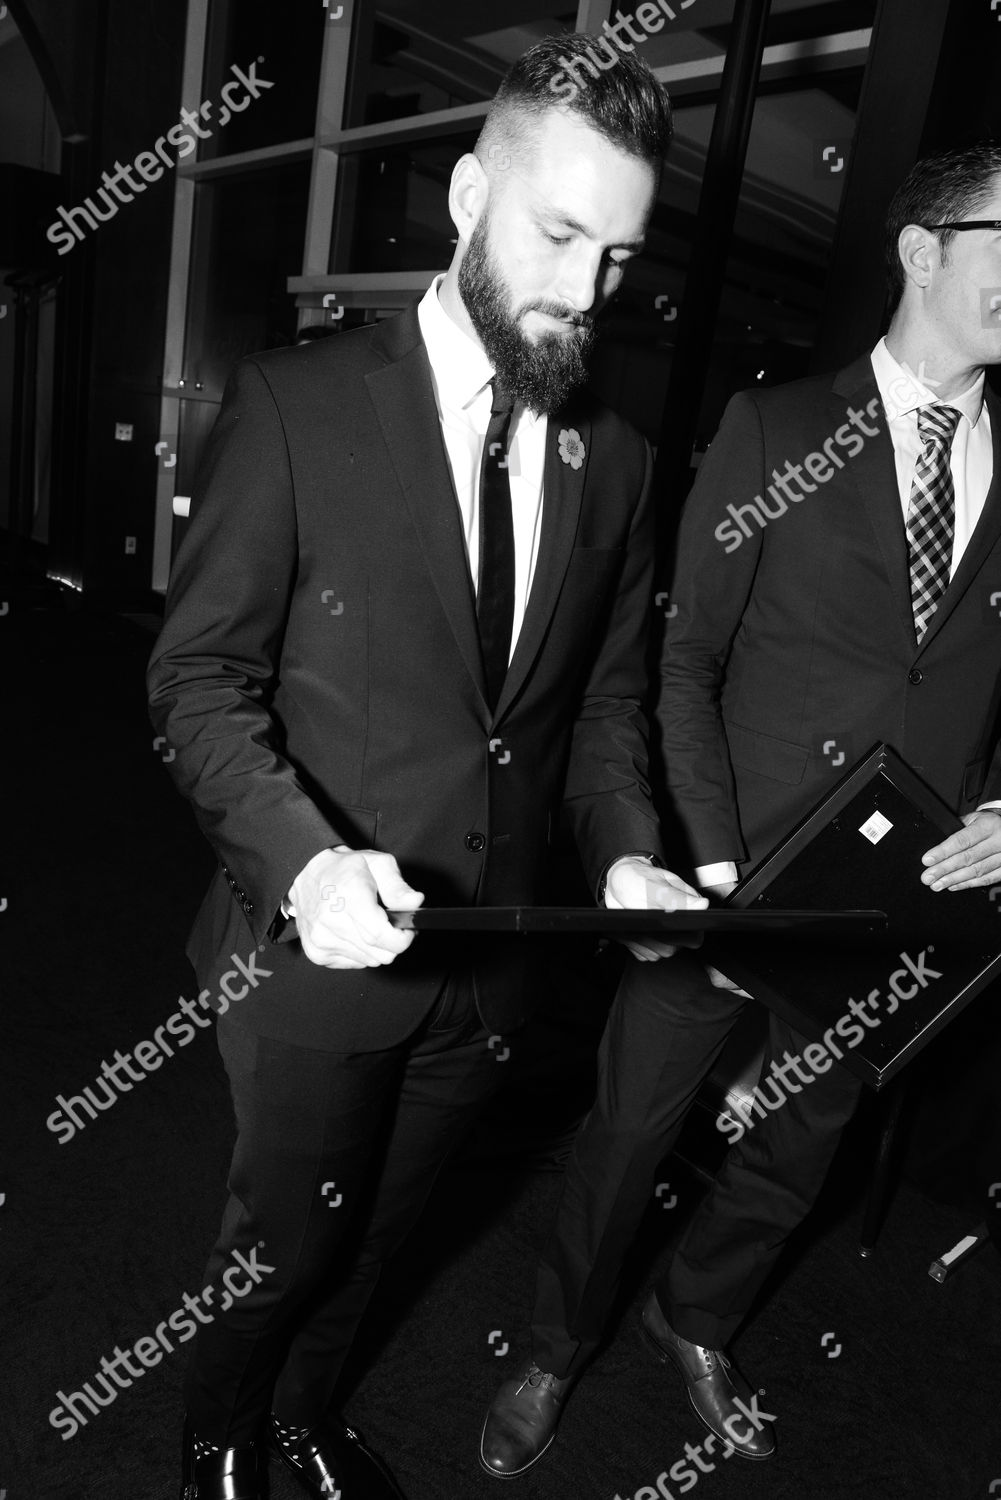 editorial-image-5th-annual-headstrong-benefit-gala,-manhattan,-new-york,-usa---16-oct-2017-9140092fo-preview.jpg